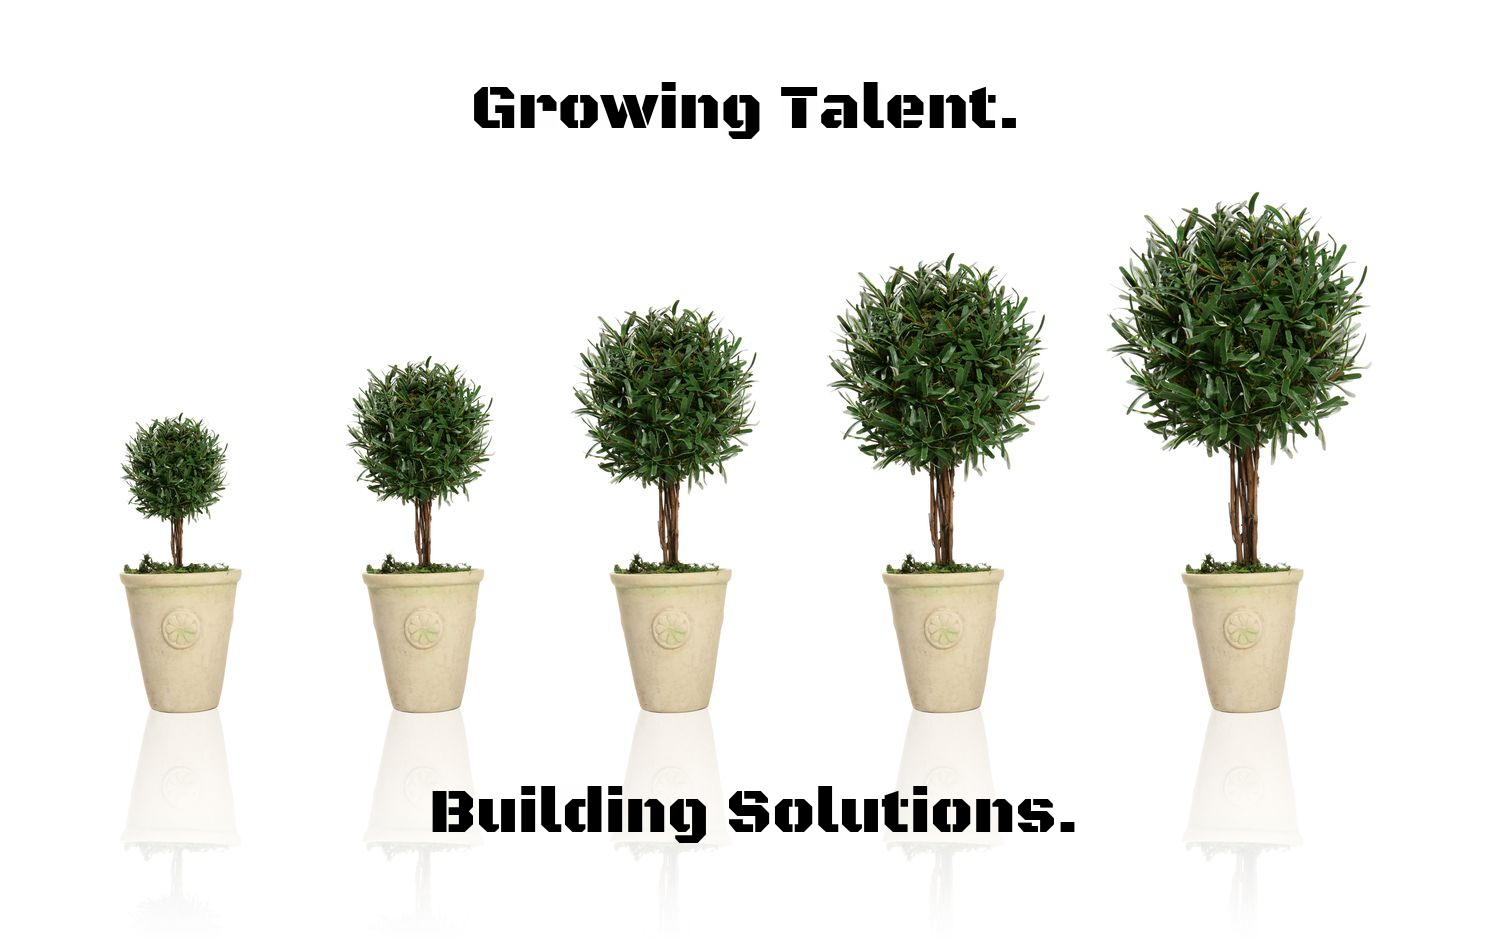 Growing Talent. Building Solutions.